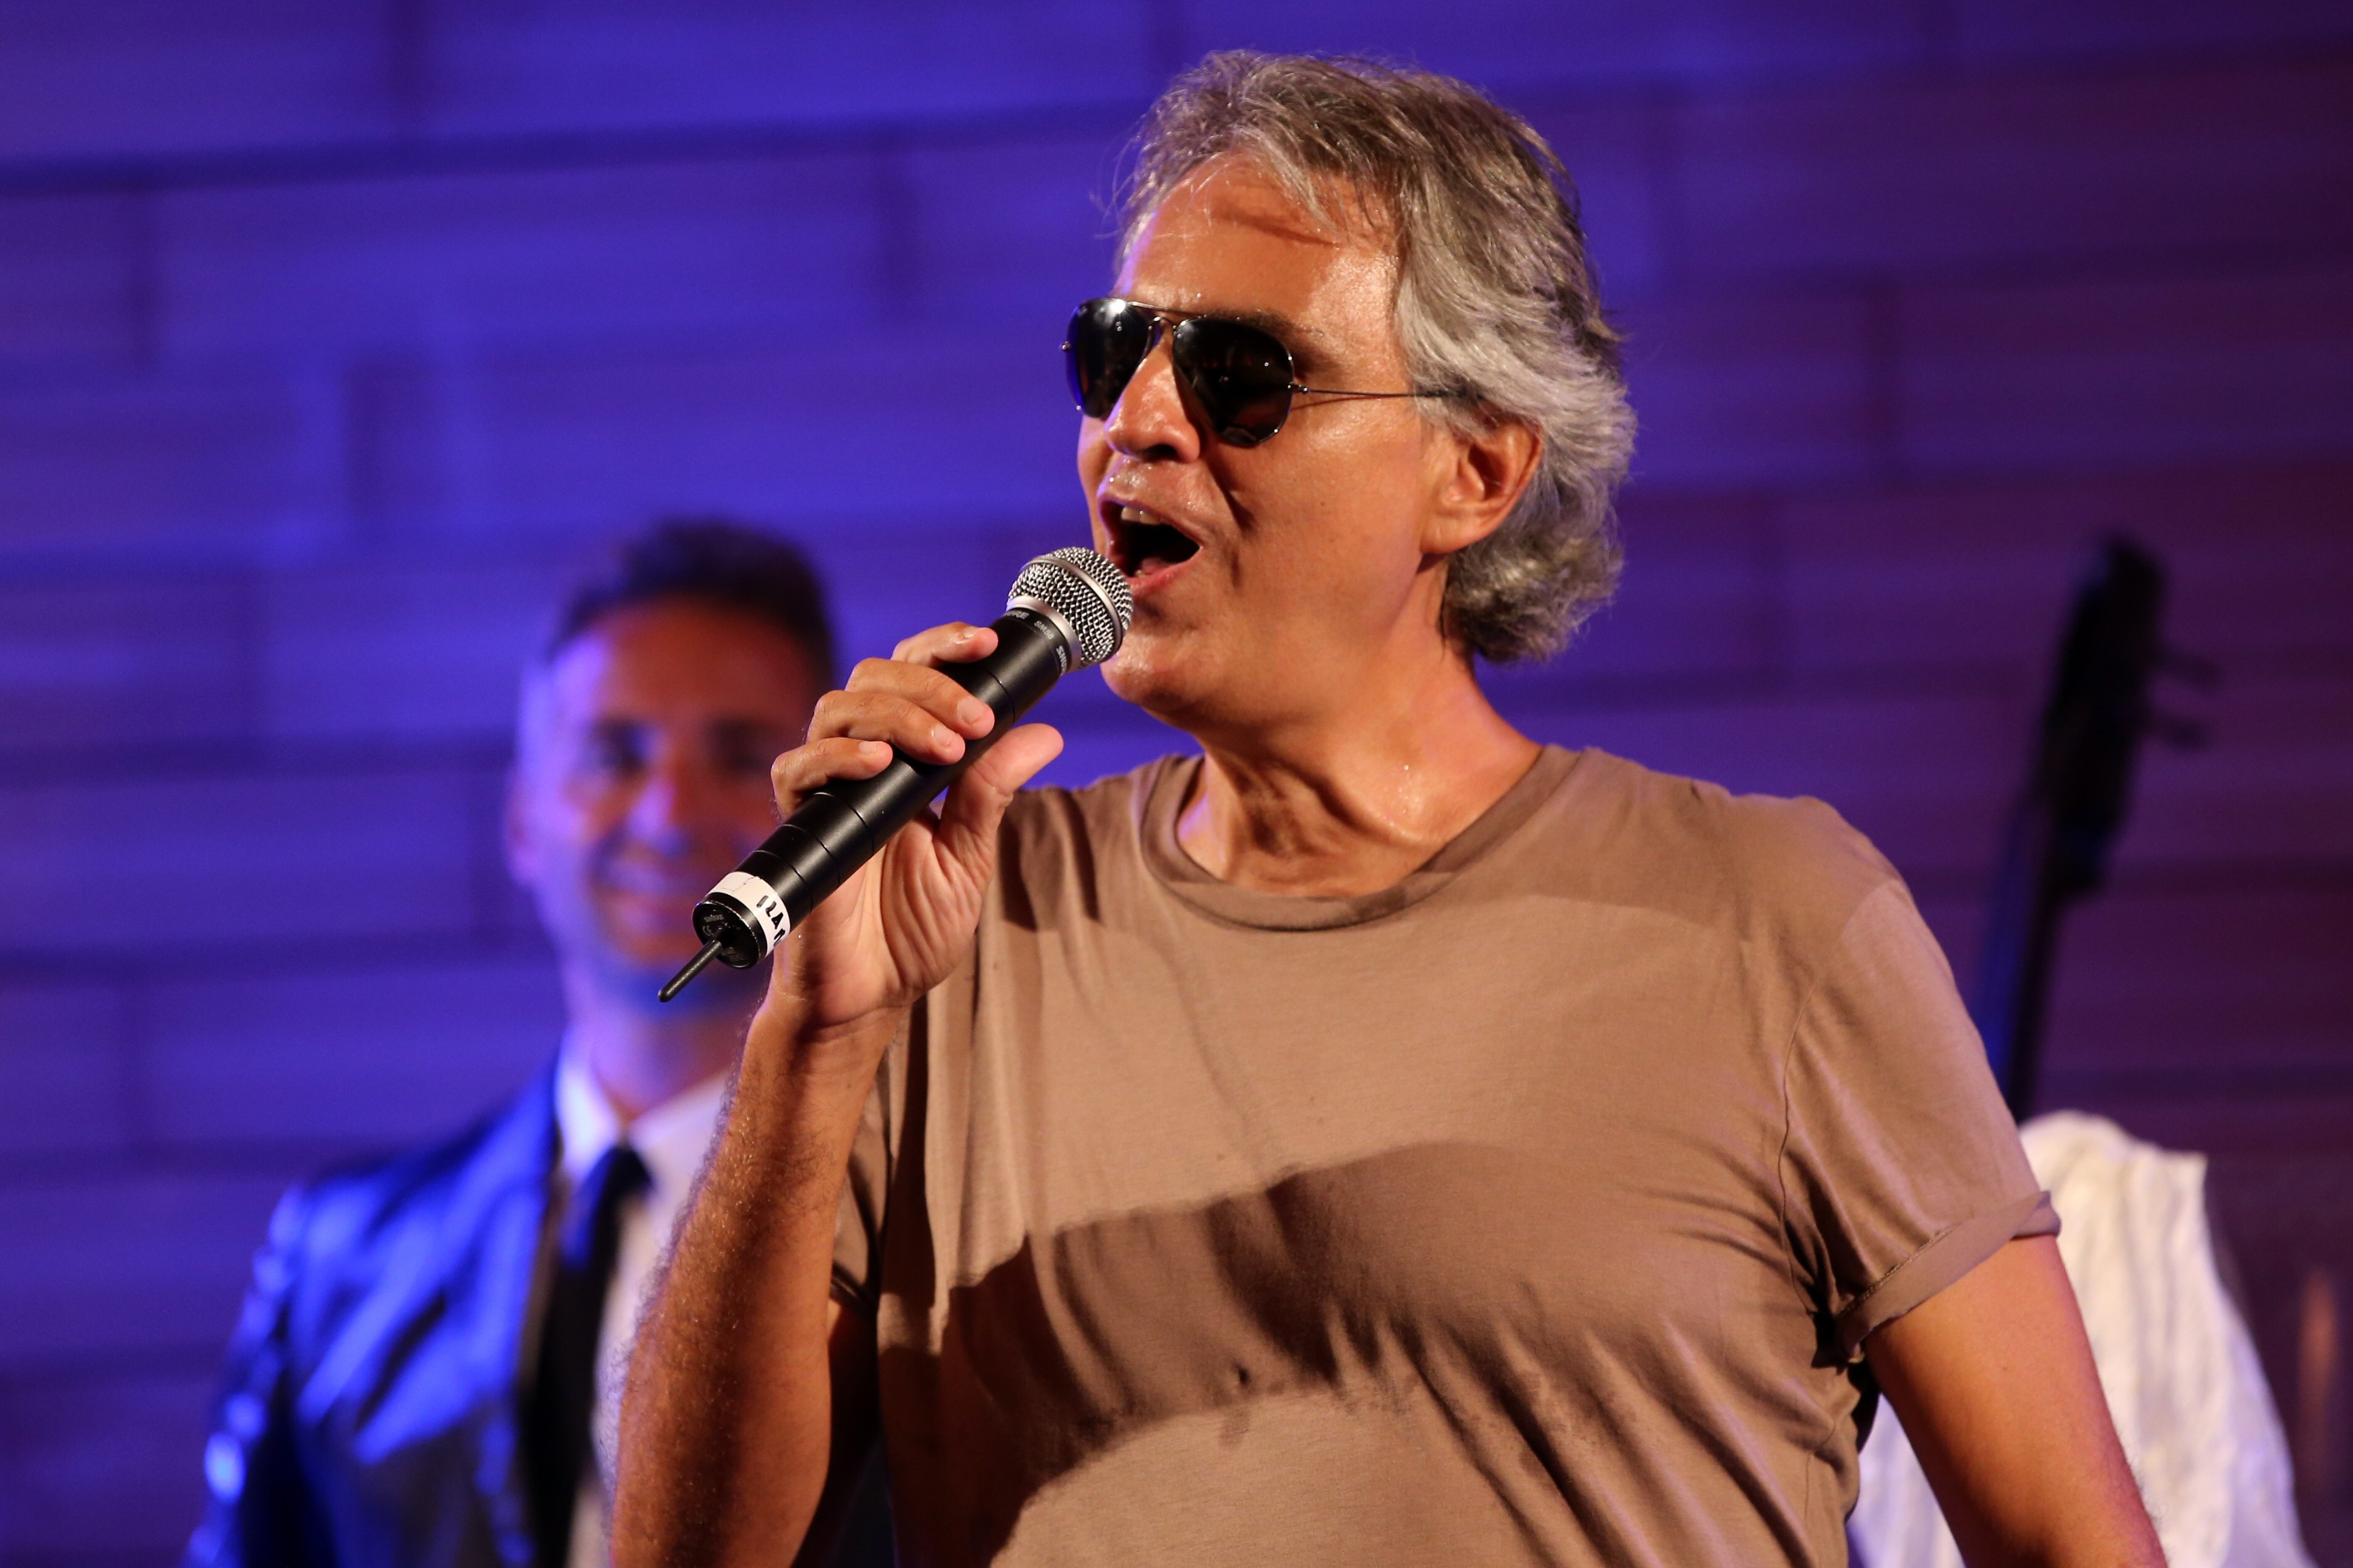 2015 Celebrity Fight Night Italy benefiting The Andrea Bocelli Foundation